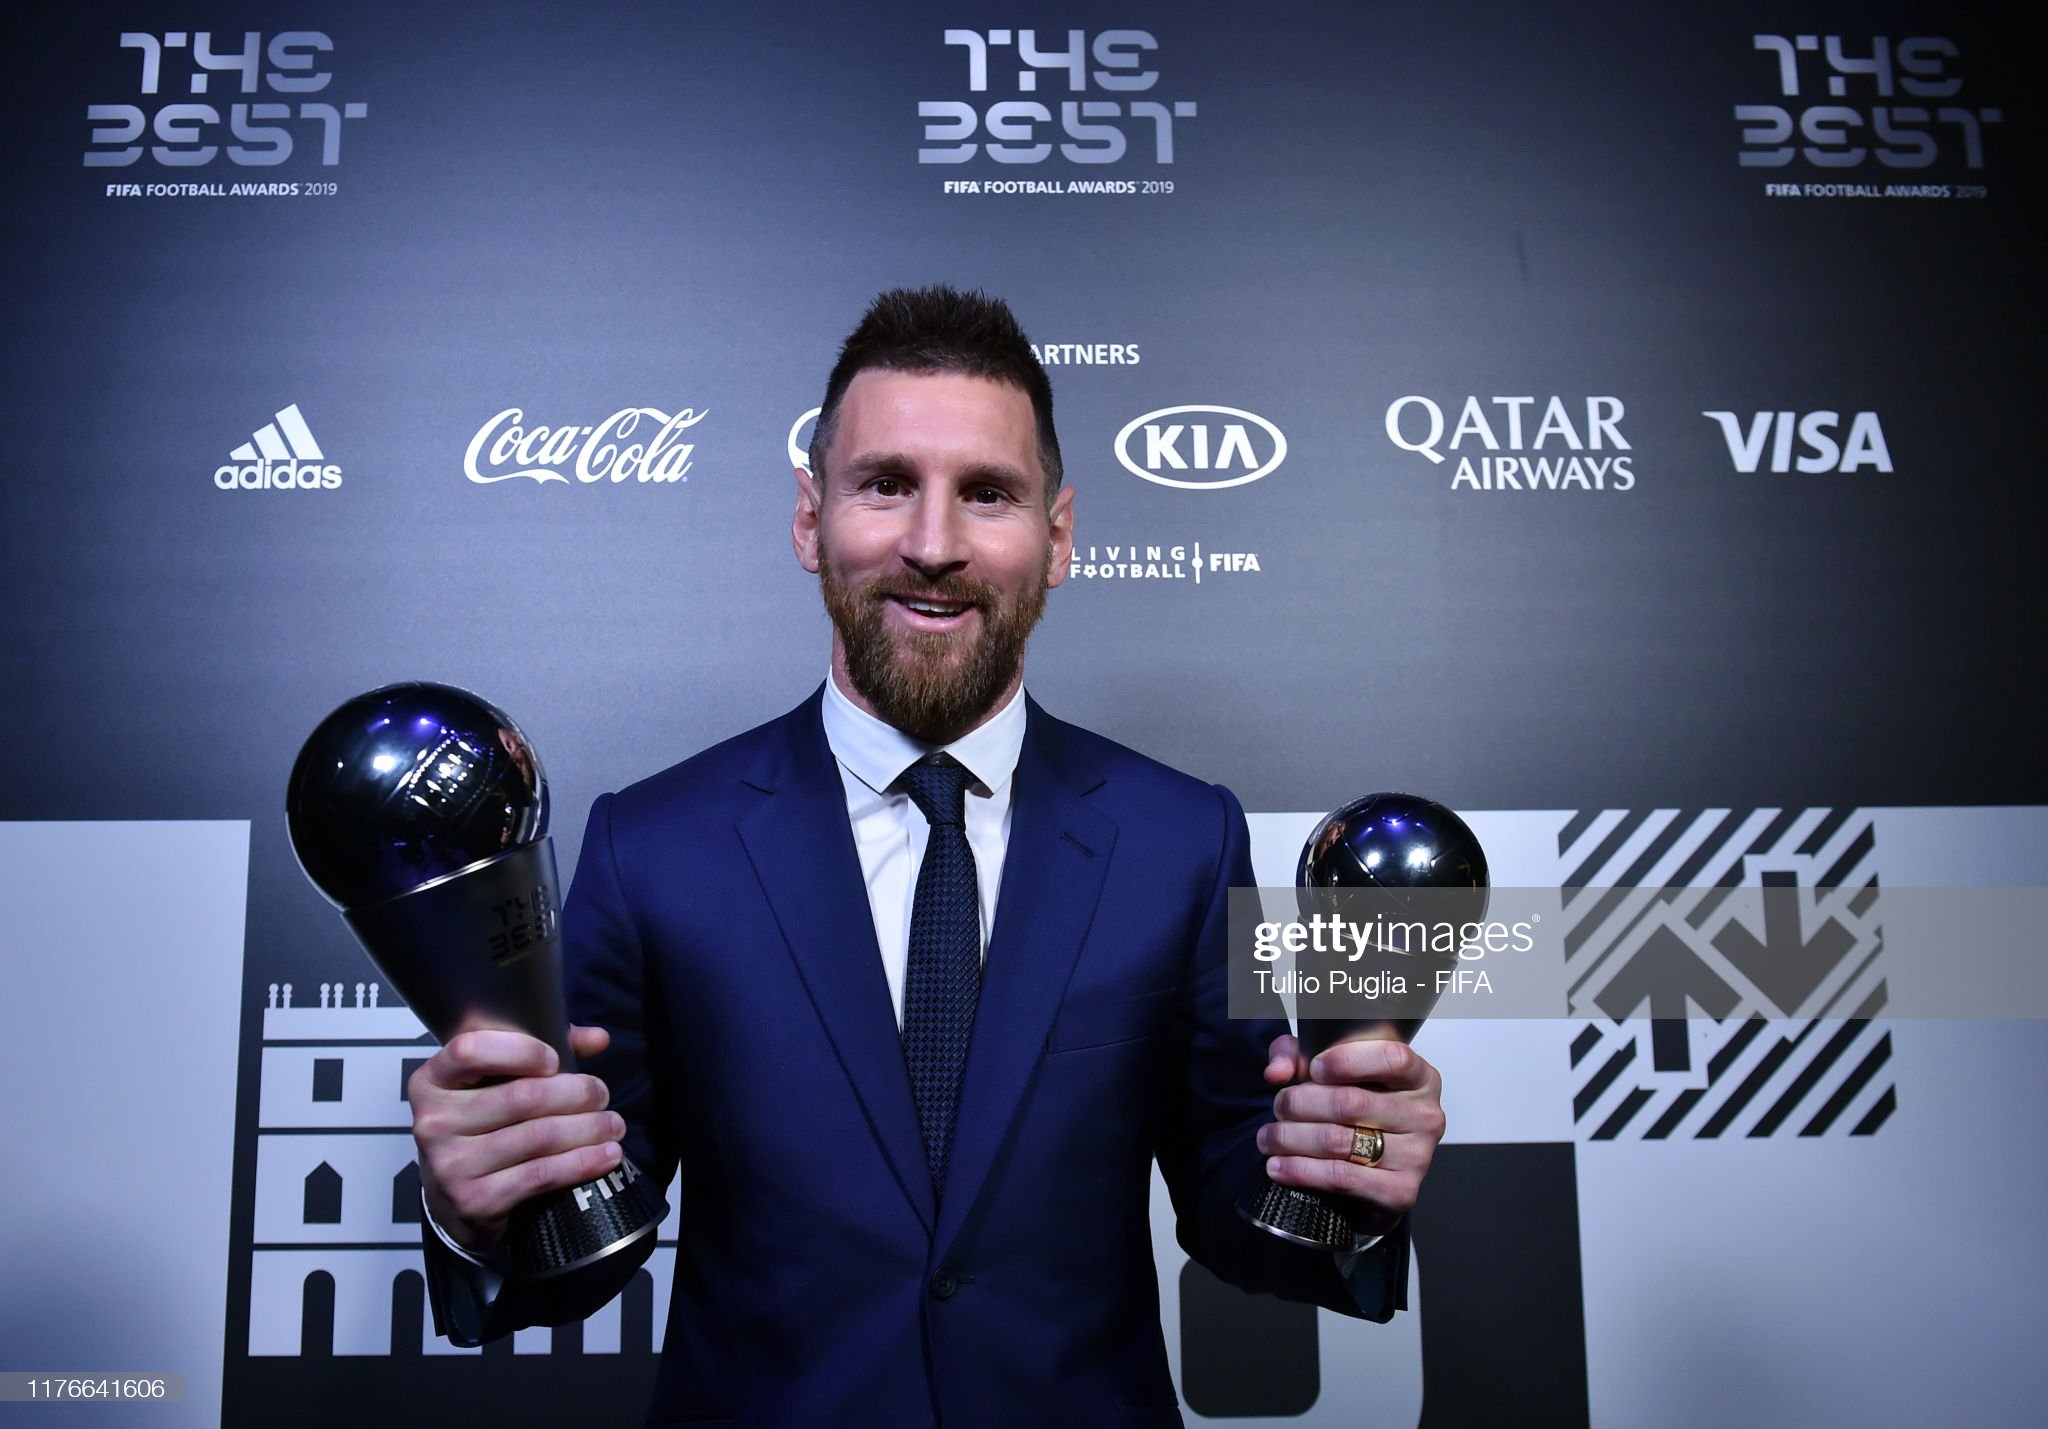 The Best FIFA Football Awards 2019 Lionel-messi-of-fc-barcelona-and-argentina-poses-with-the-the-best-picture-id1176641606?s=2048x2048